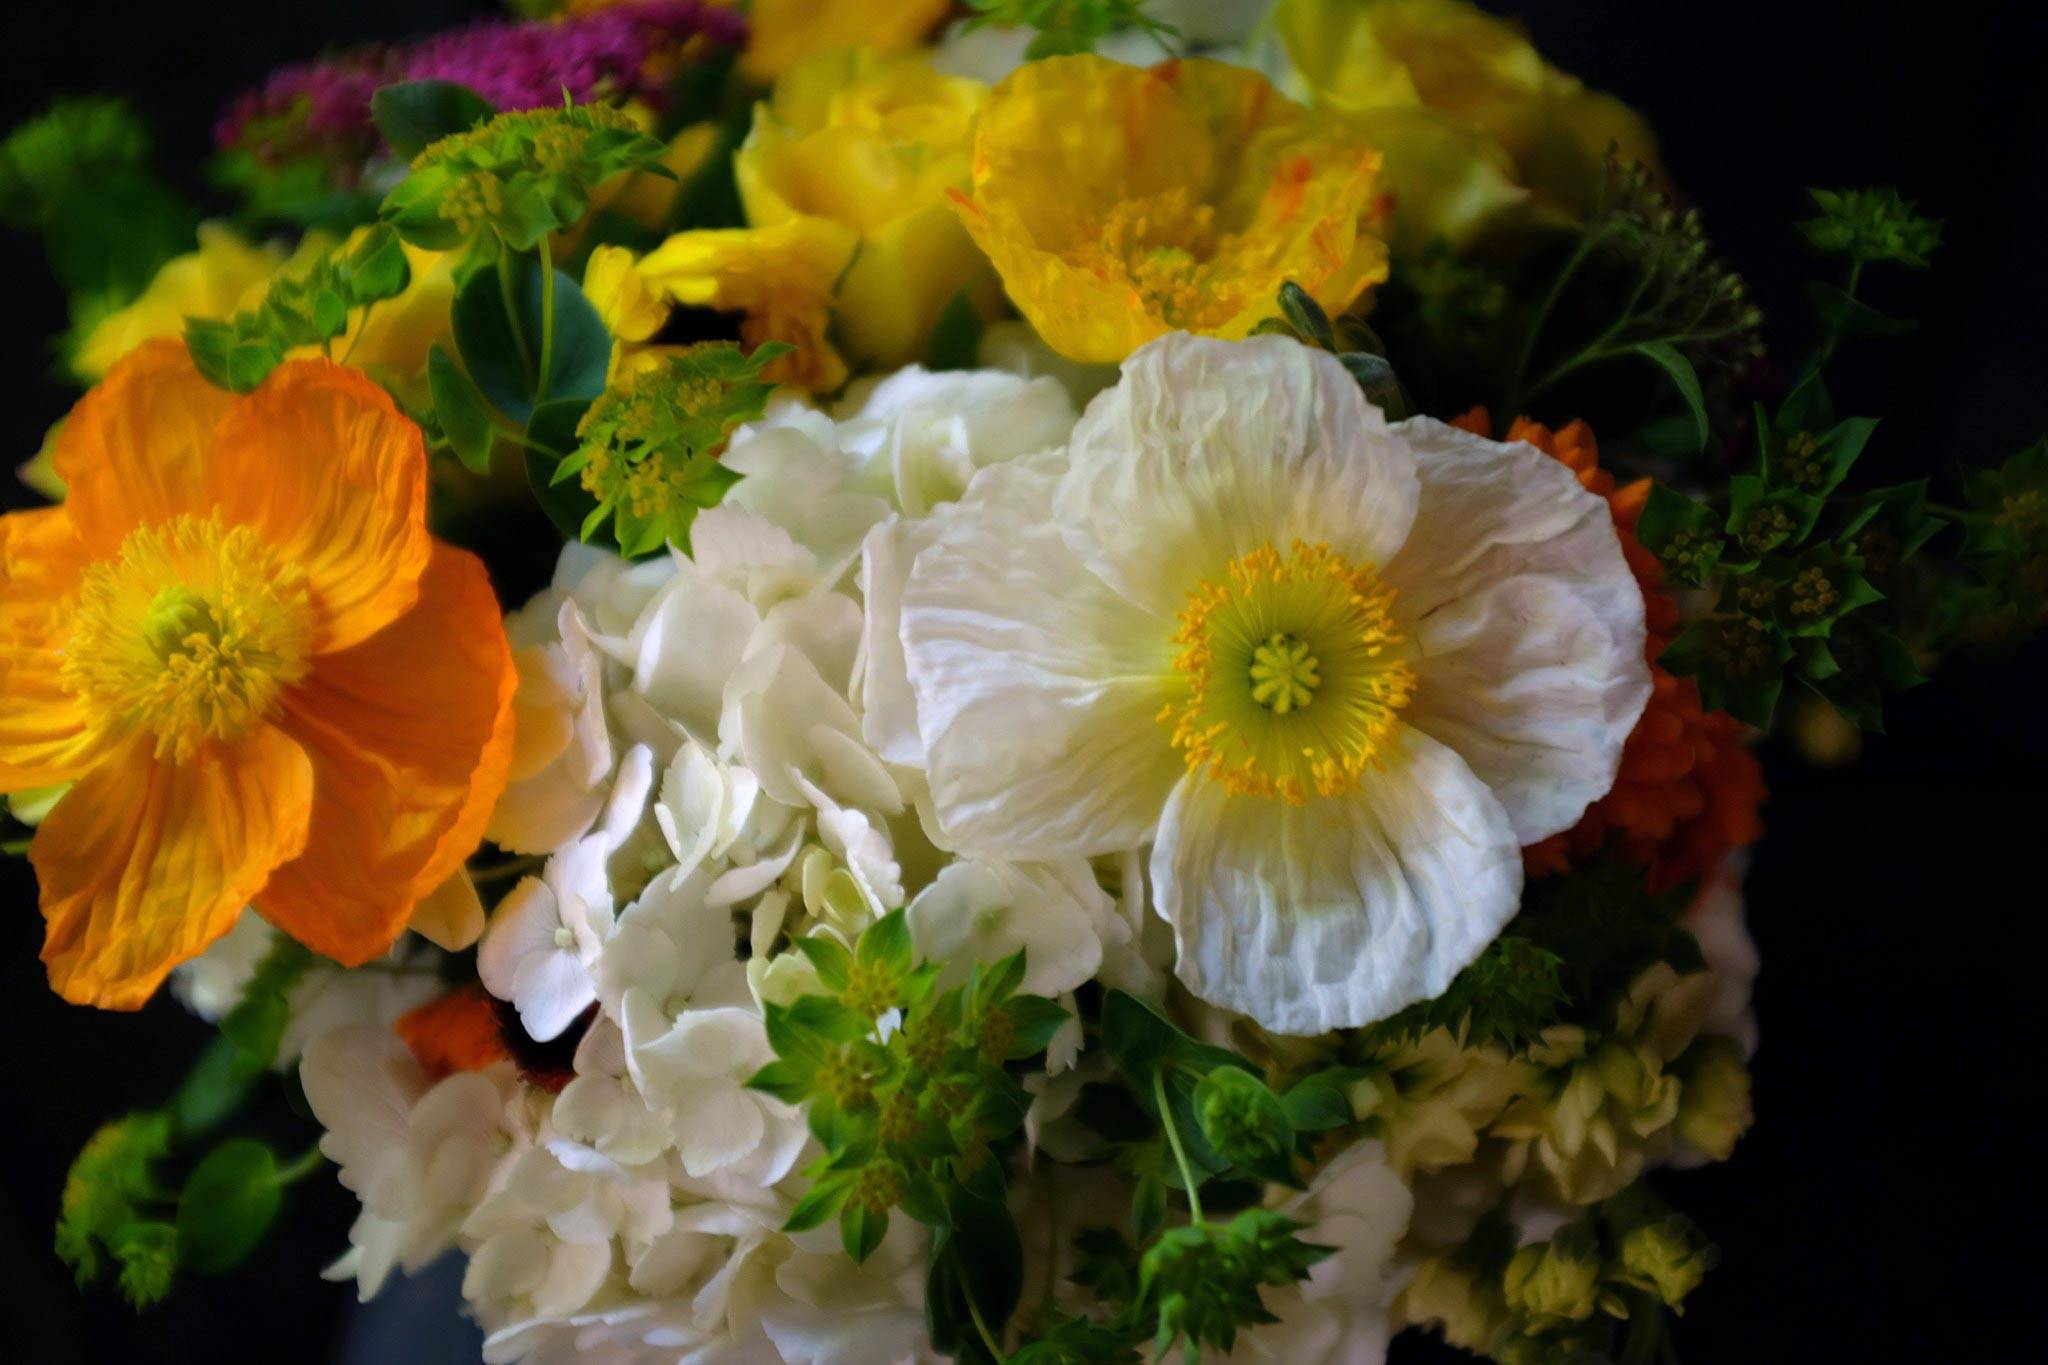 Voted favorite florist in lexington ky flower delivery michlers designing fresh cut flower arrangements orchid gardens and terrariums for holidays birthdays anniversaries funerals and to say thank you for those izmirmasajfo